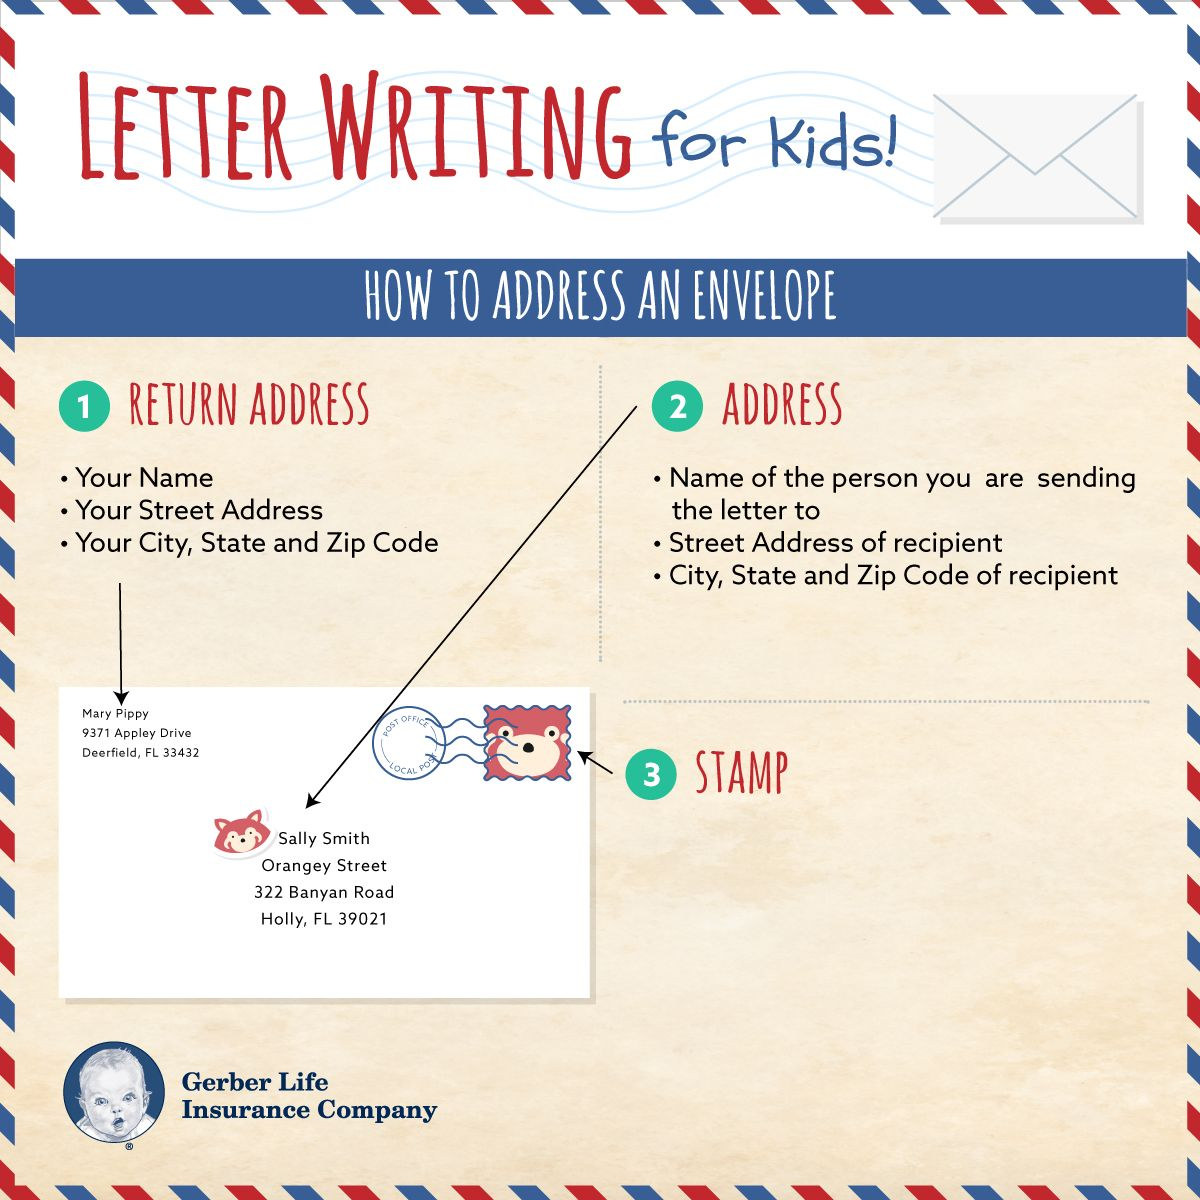 Letter Writing 101 Teach your kiddos how to send snail